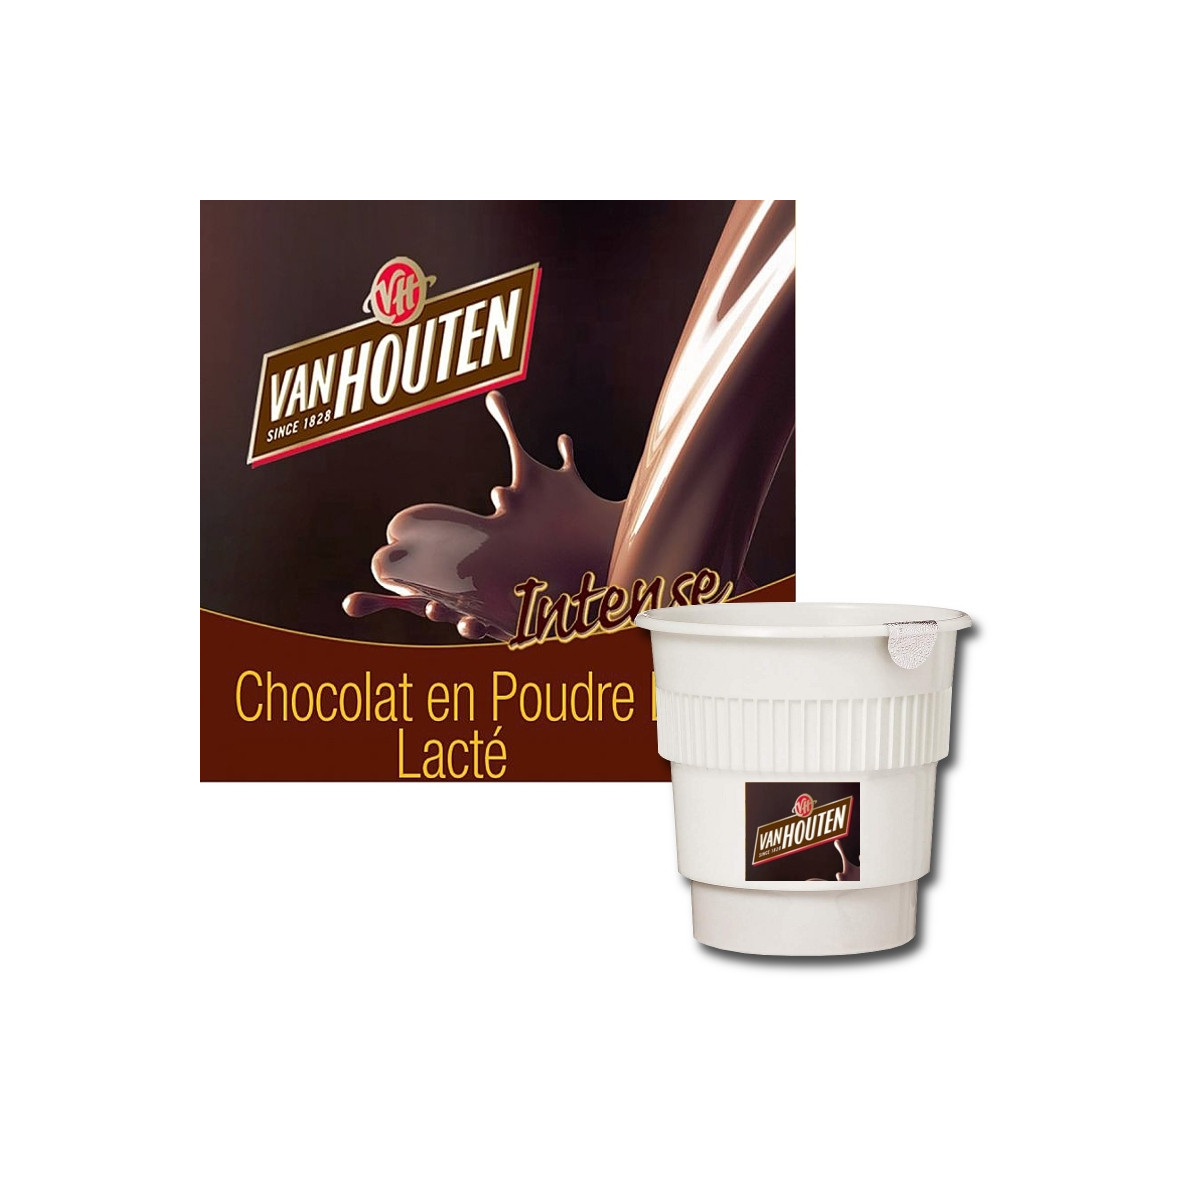 gobelet pr dos van houten chocolat chaud lact 20 boissons coffee webstore. Black Bedroom Furniture Sets. Home Design Ideas